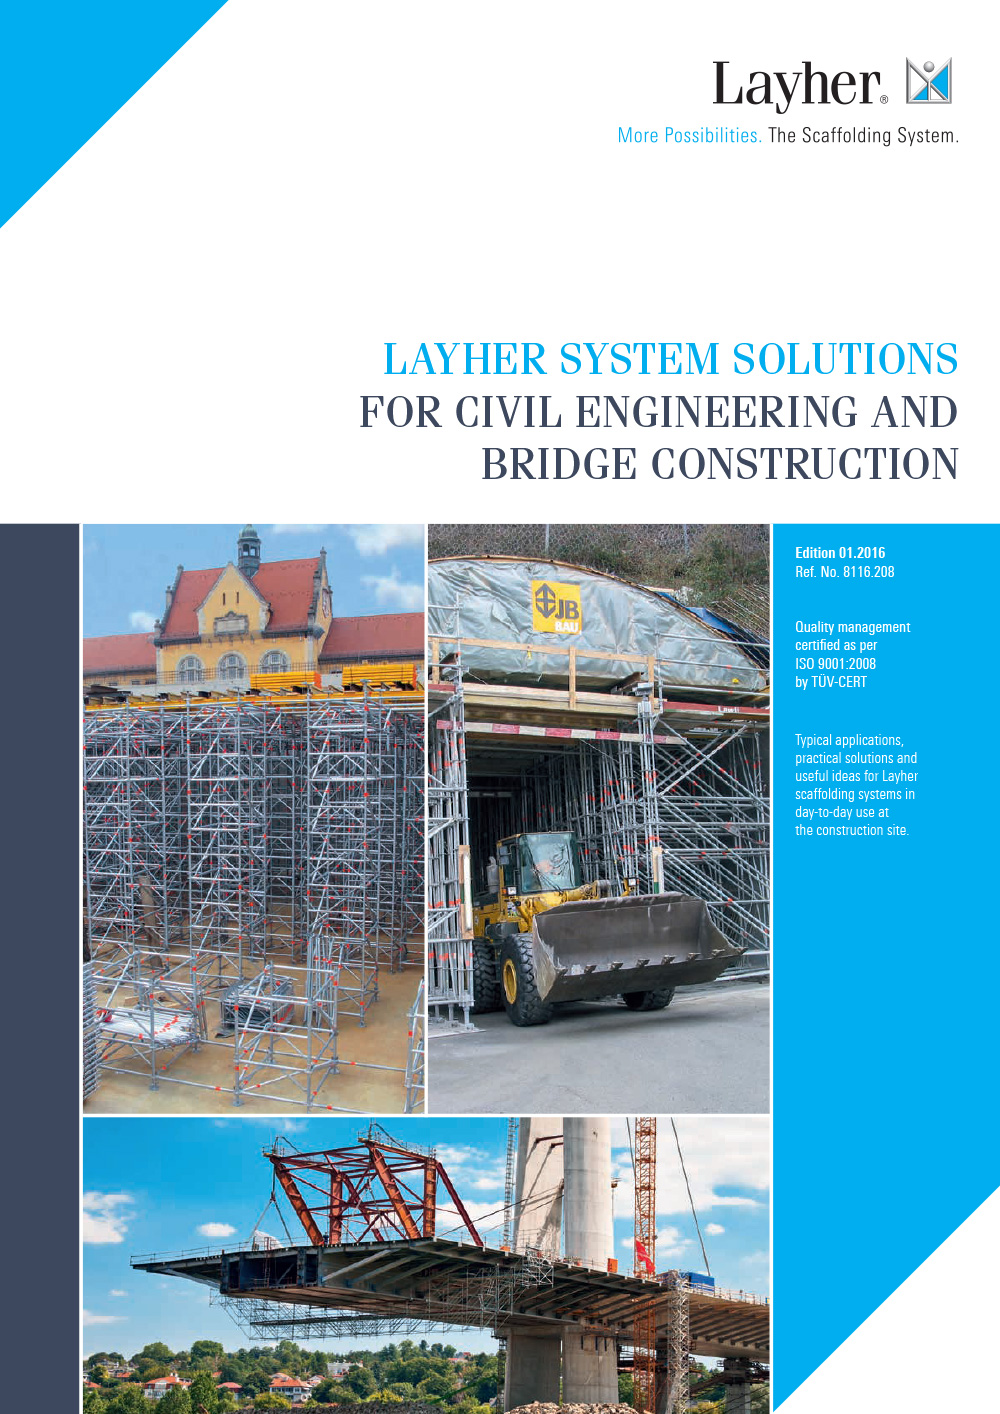 Layher System Solutions For Civil Engineering and Bridge Construction